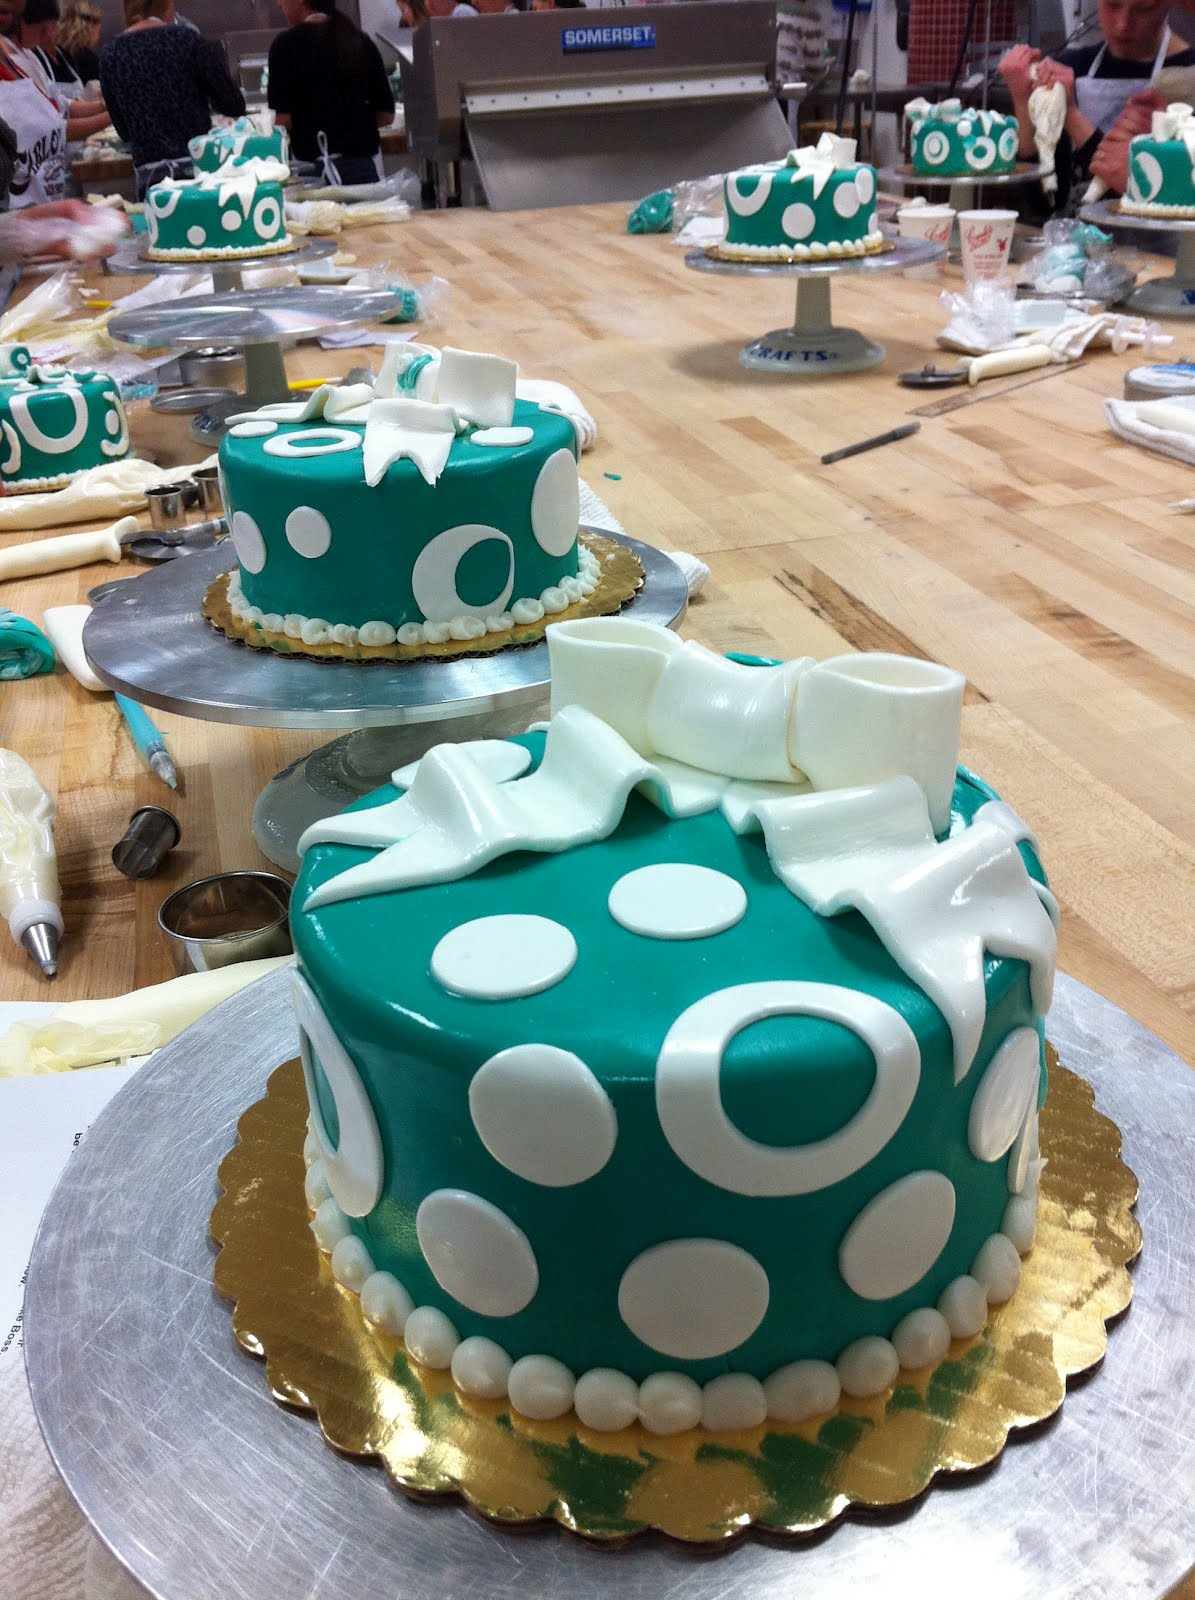 Cake decorating class at carlo 39 s bakery our gluten free for Bakery decoration